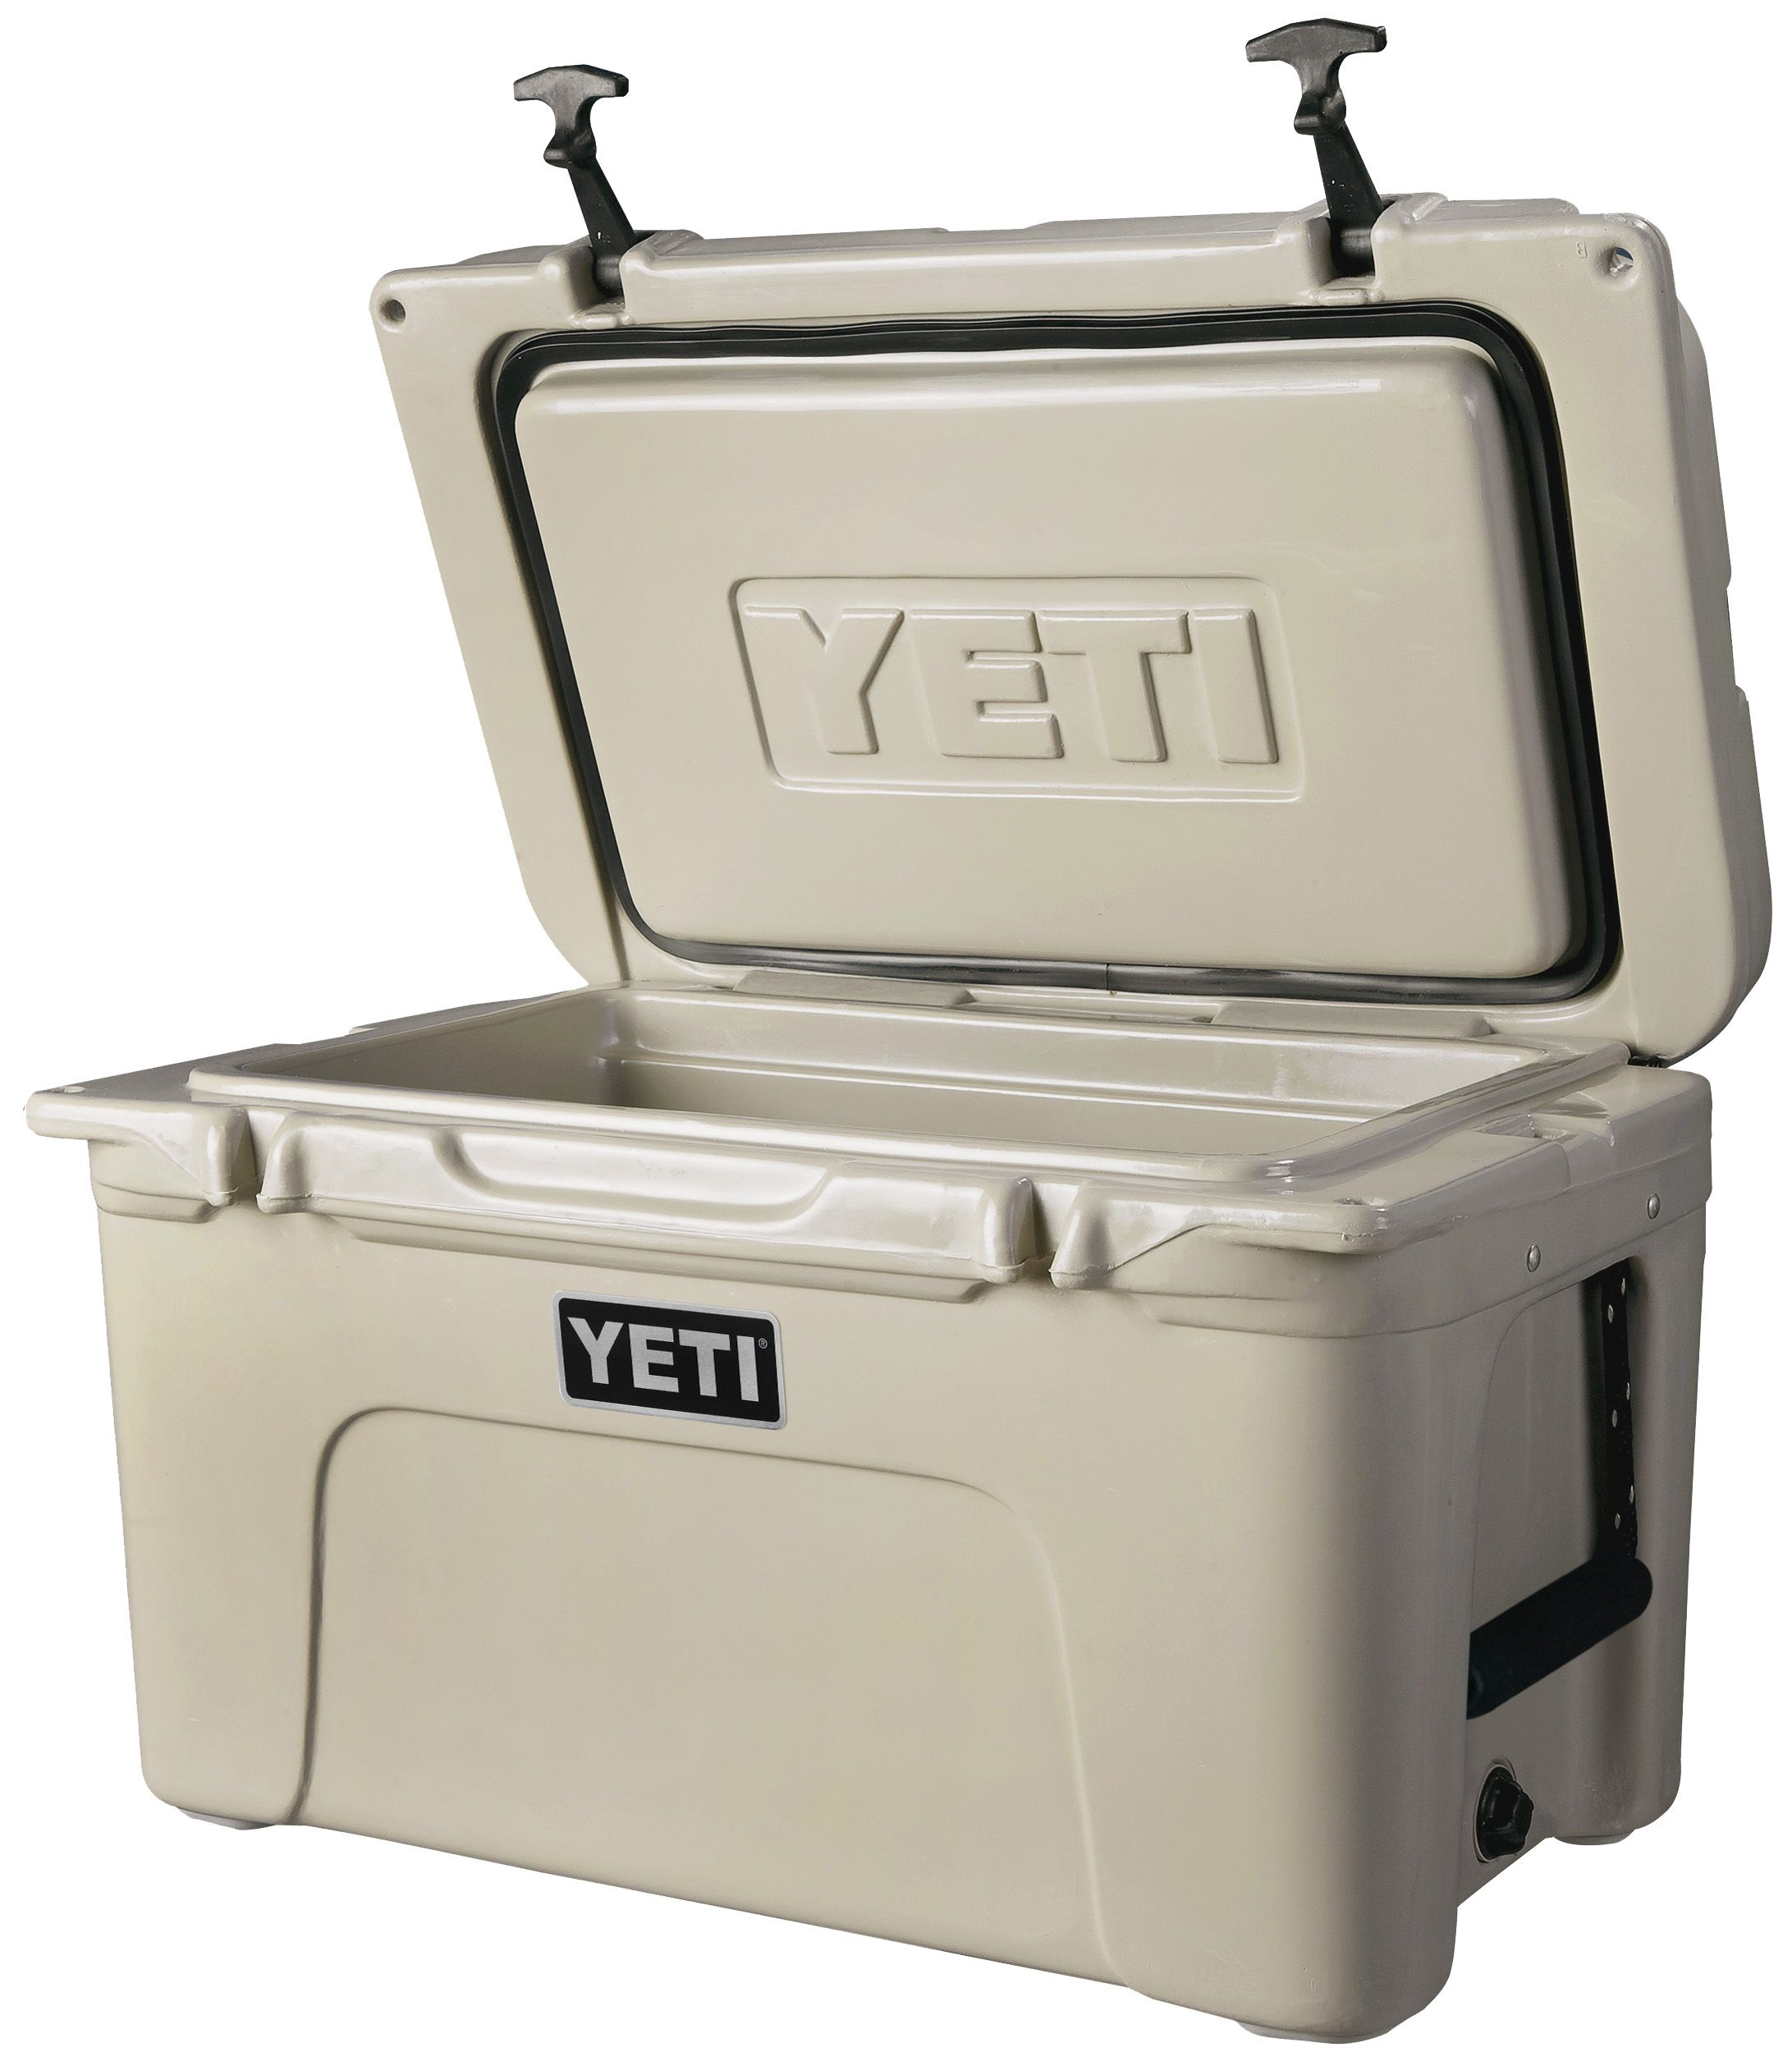 Yeti Tundra 45 White Or Desert Tan An Extreme Example Of How Durable And Insulated A Cooler Can Be 299 99 Yeti Coolers Yeti Cooler Cooler